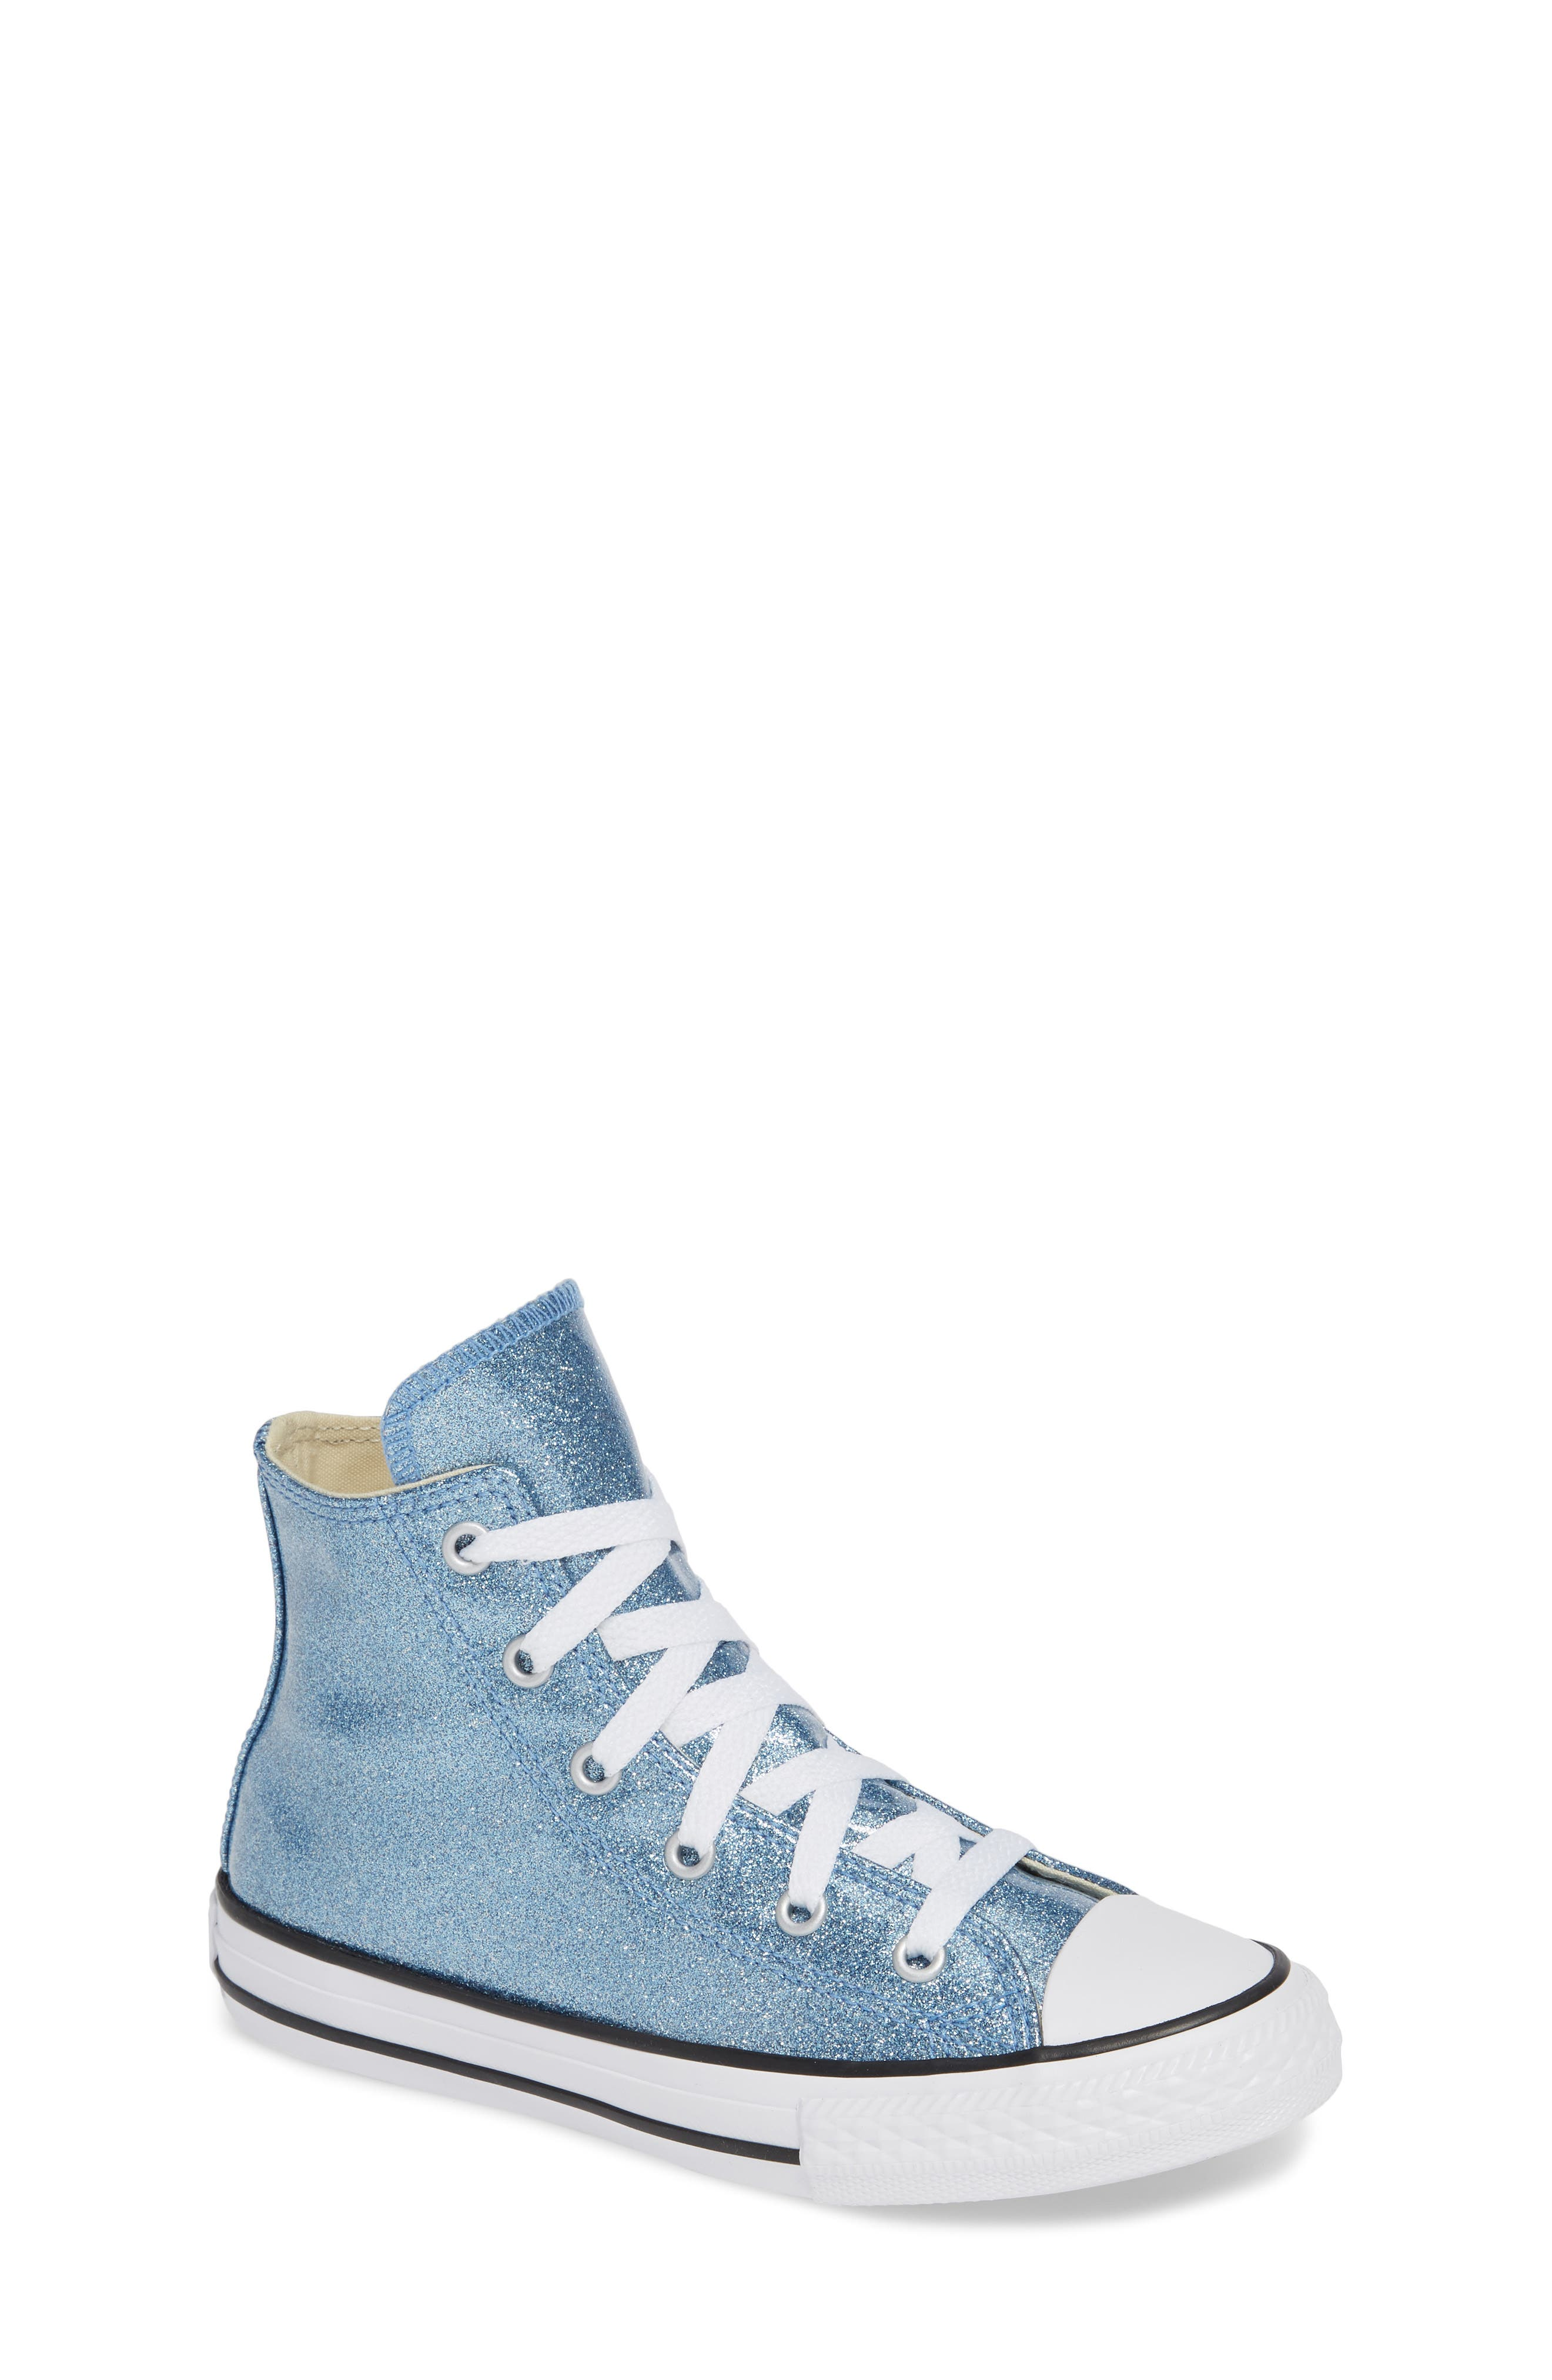 All Star<sup>®</sup> Glitter High Top Sneaker,                         Main,                         color, Light Blue